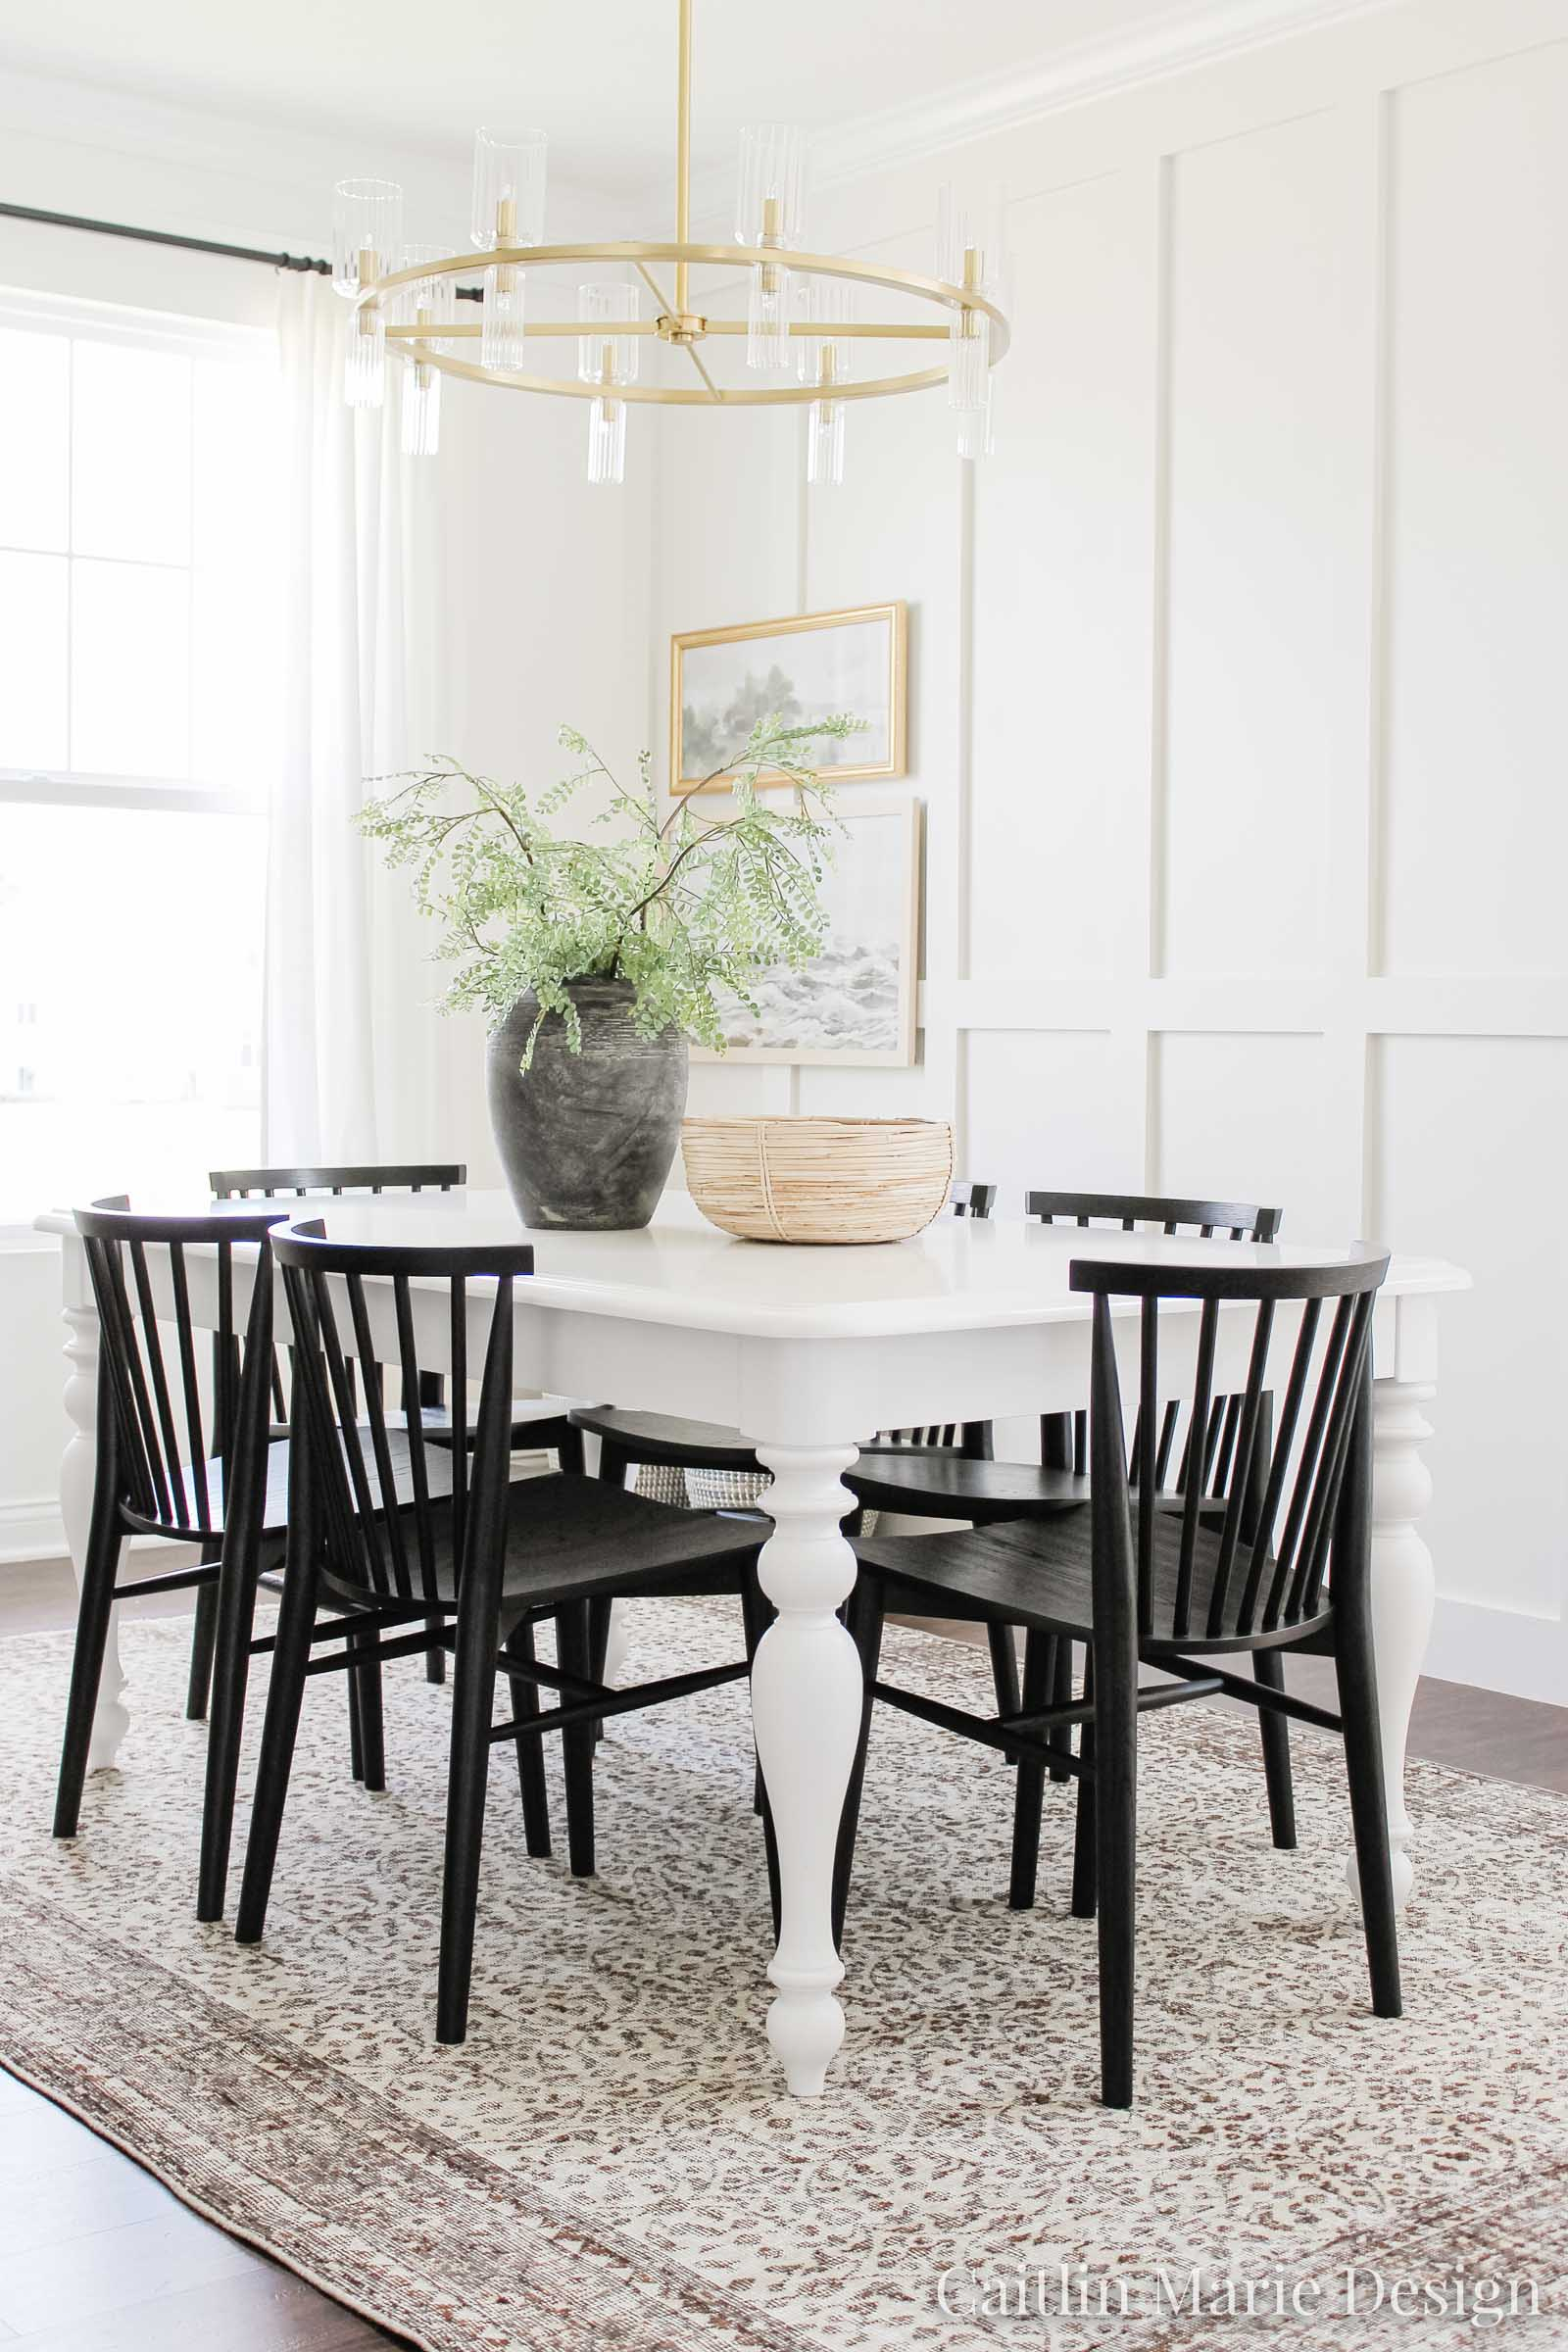 Modern Dining Chair Update with Article | coastal modern dining room, brown vintage rug, landscape art, aged stone vase, board and batten accent wall